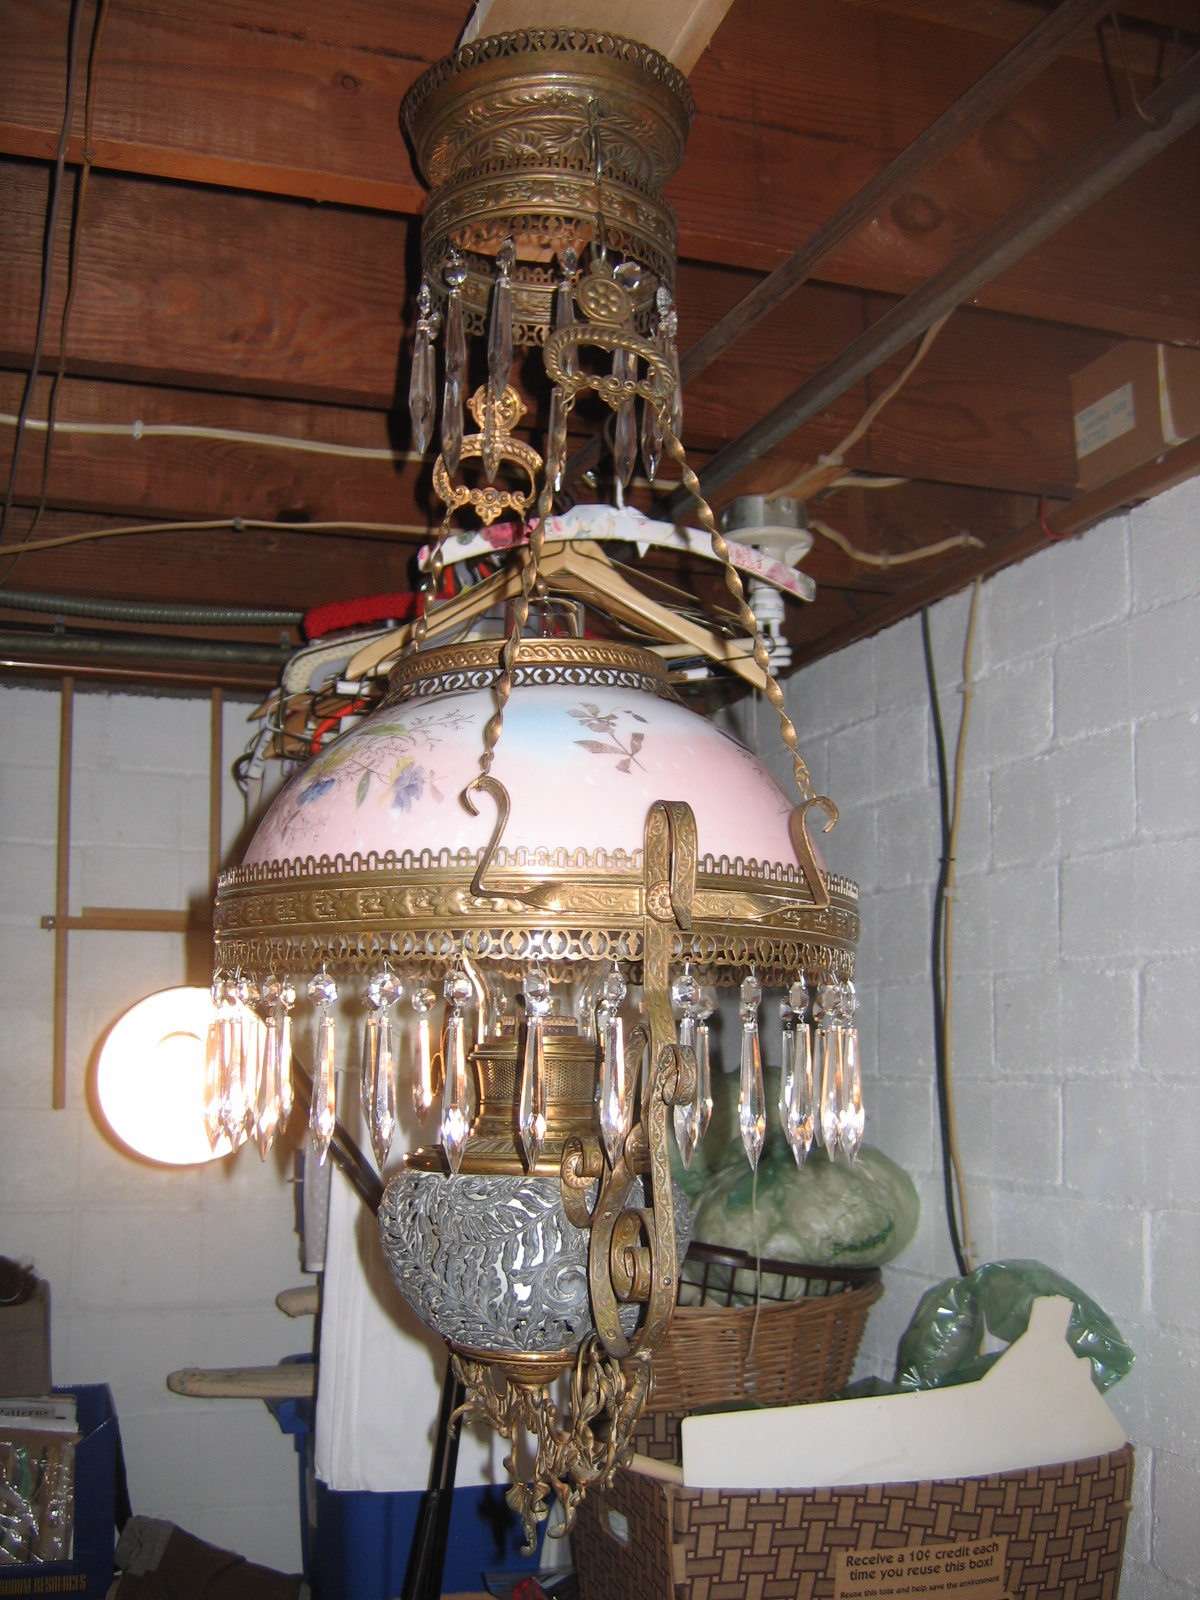 Swag Lamps for Sale http://www.antiques.com/classified/1122576/Antique-Antique-B---H-Library-Hanging-Kerosene-Oil-Lamp-Lighting-w--Functional-Pulley-Chain---Lead-Crystals-ITEM--6000